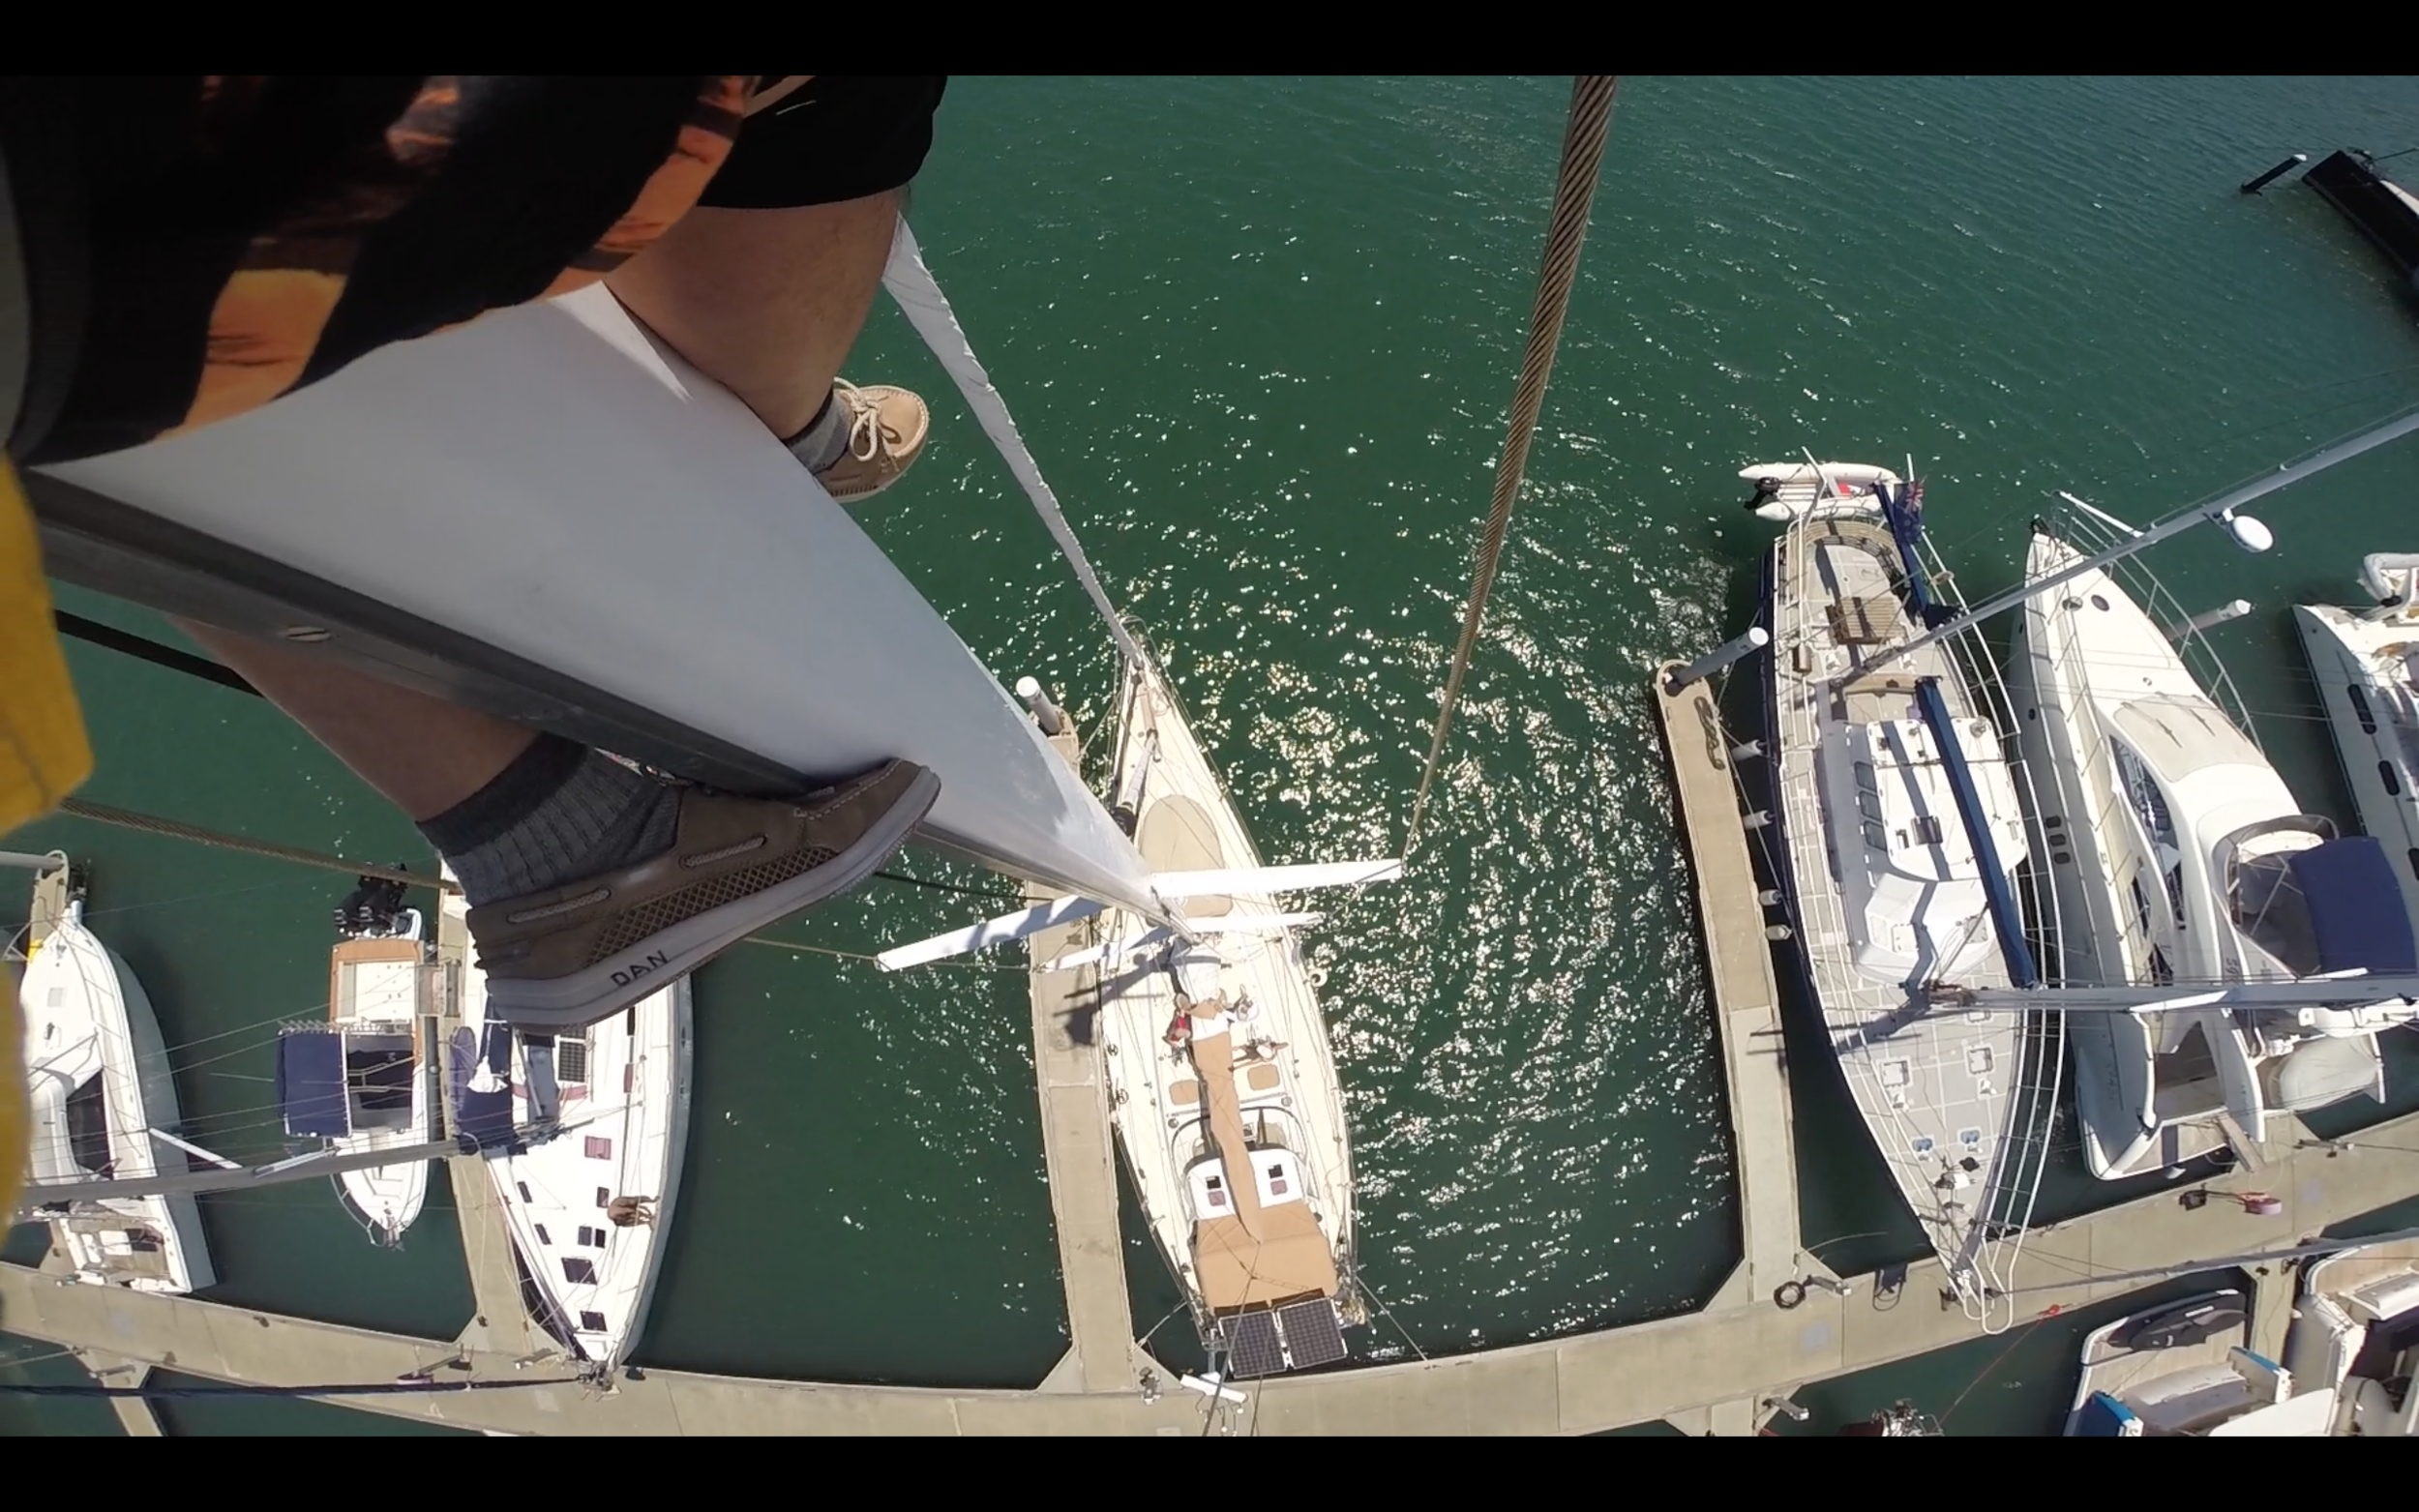 Yikes, pretty far up. (About 60 feet!)